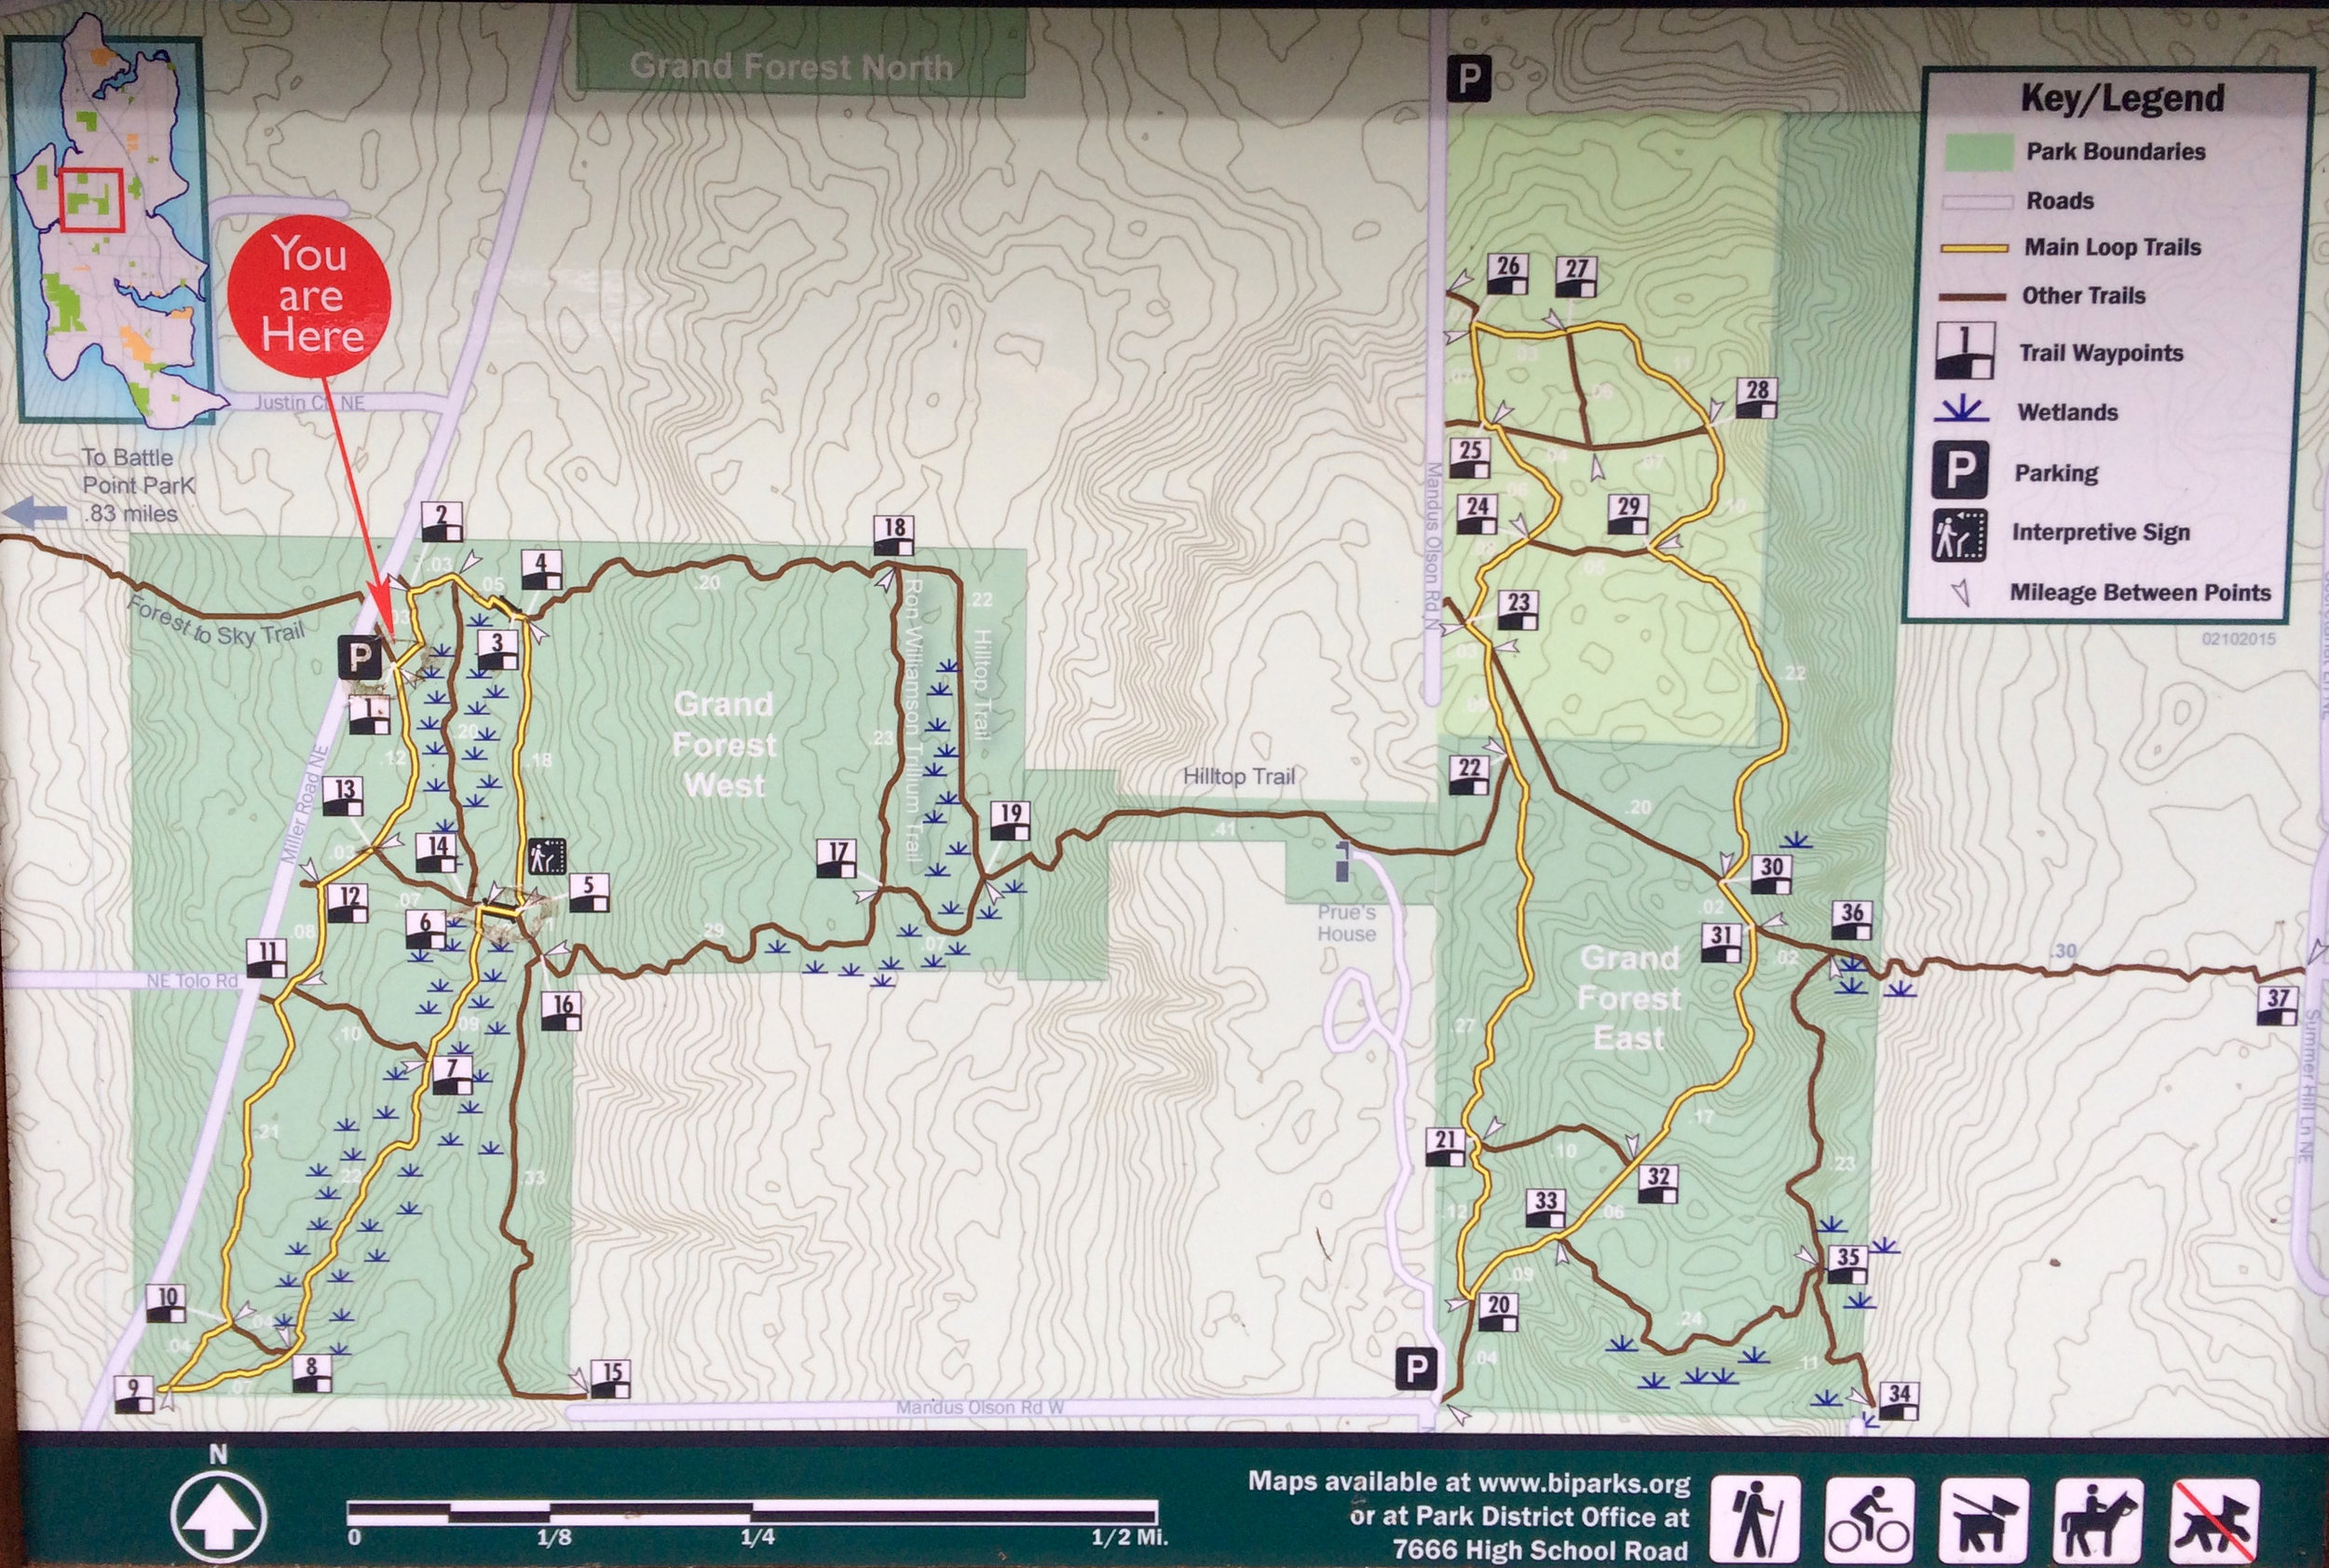 Map of The Grand Forest, Bainbridge Island